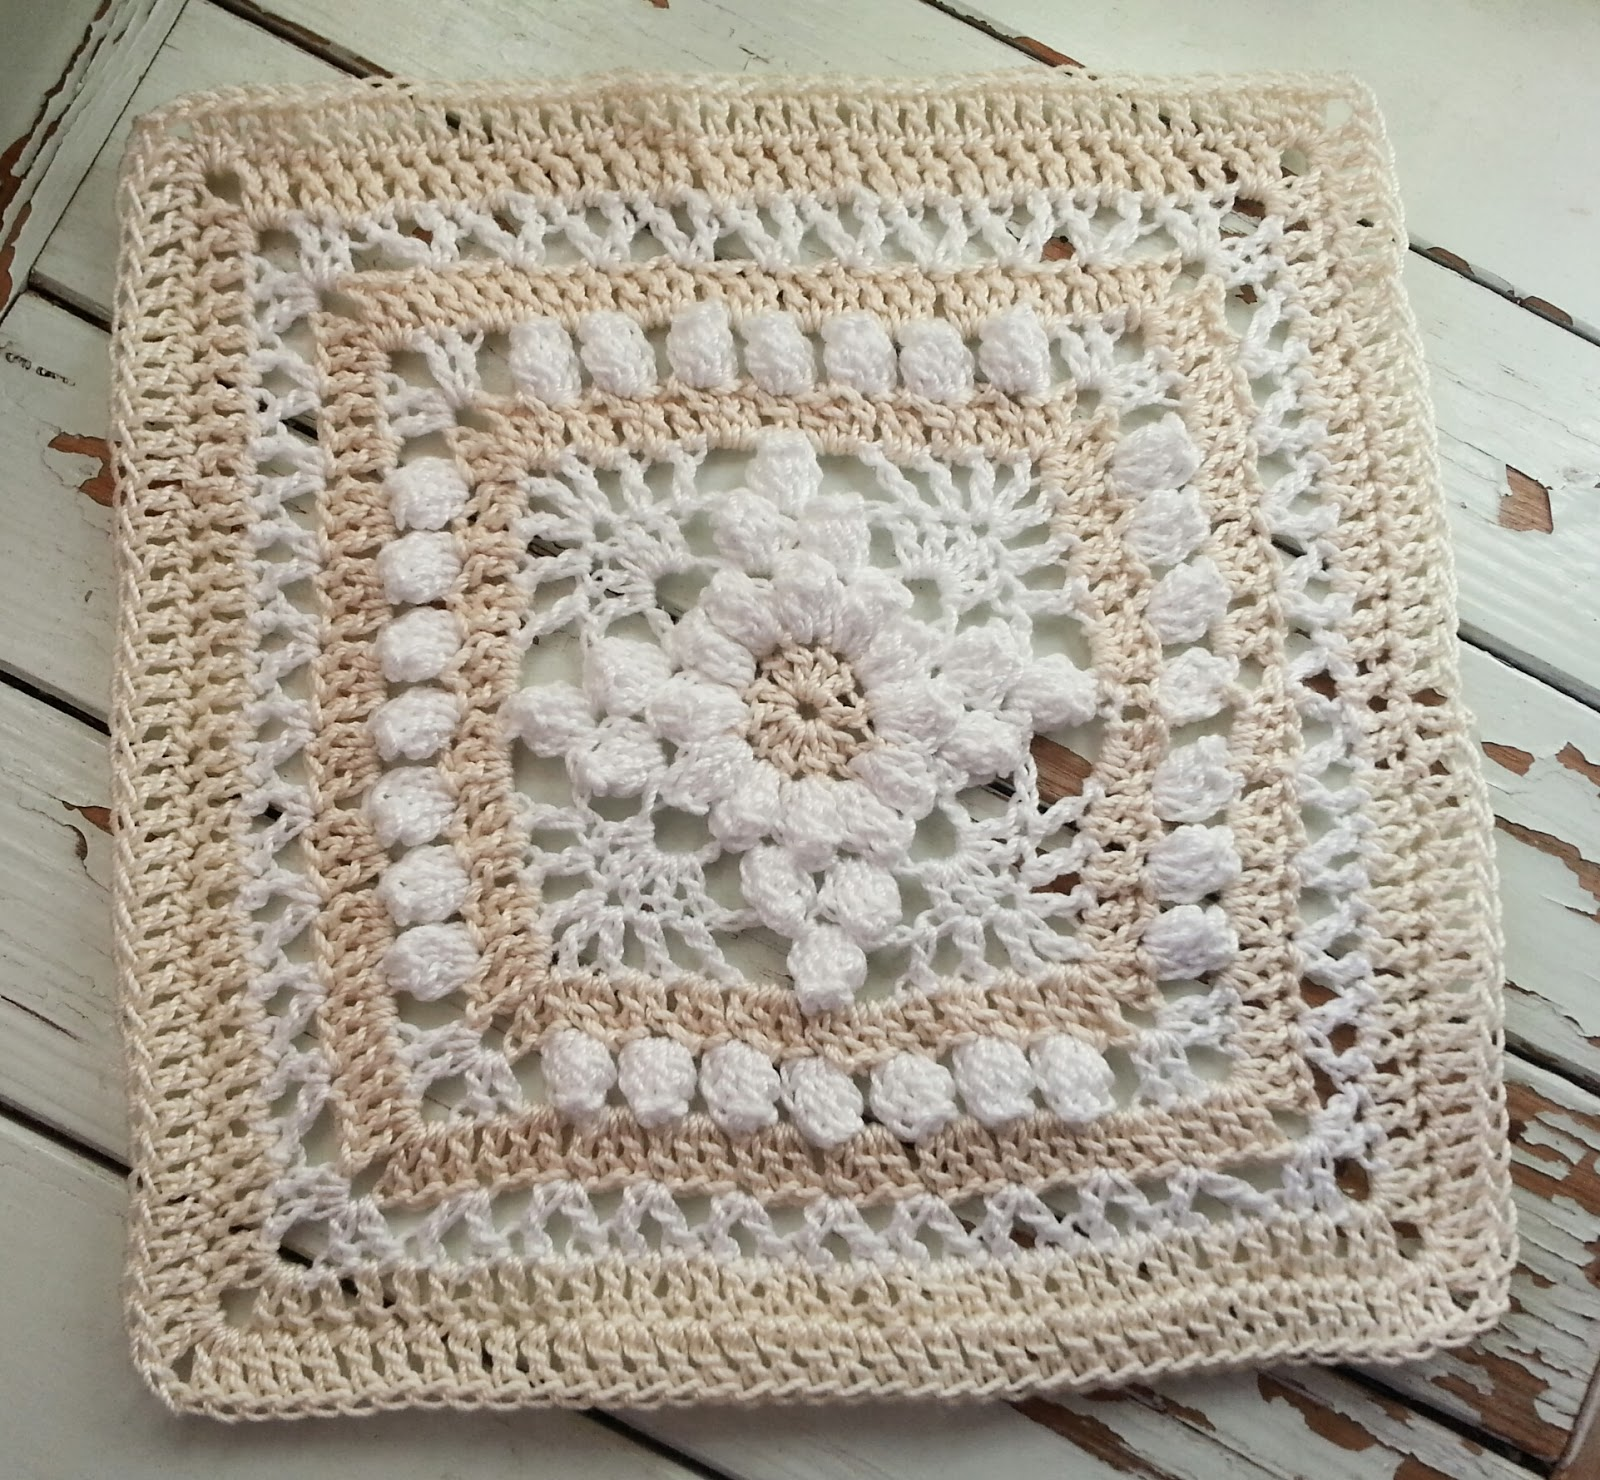 Crocheting Squares : Lace and Whimsy: Monday Heirloom Mystery CAL Crochet Square